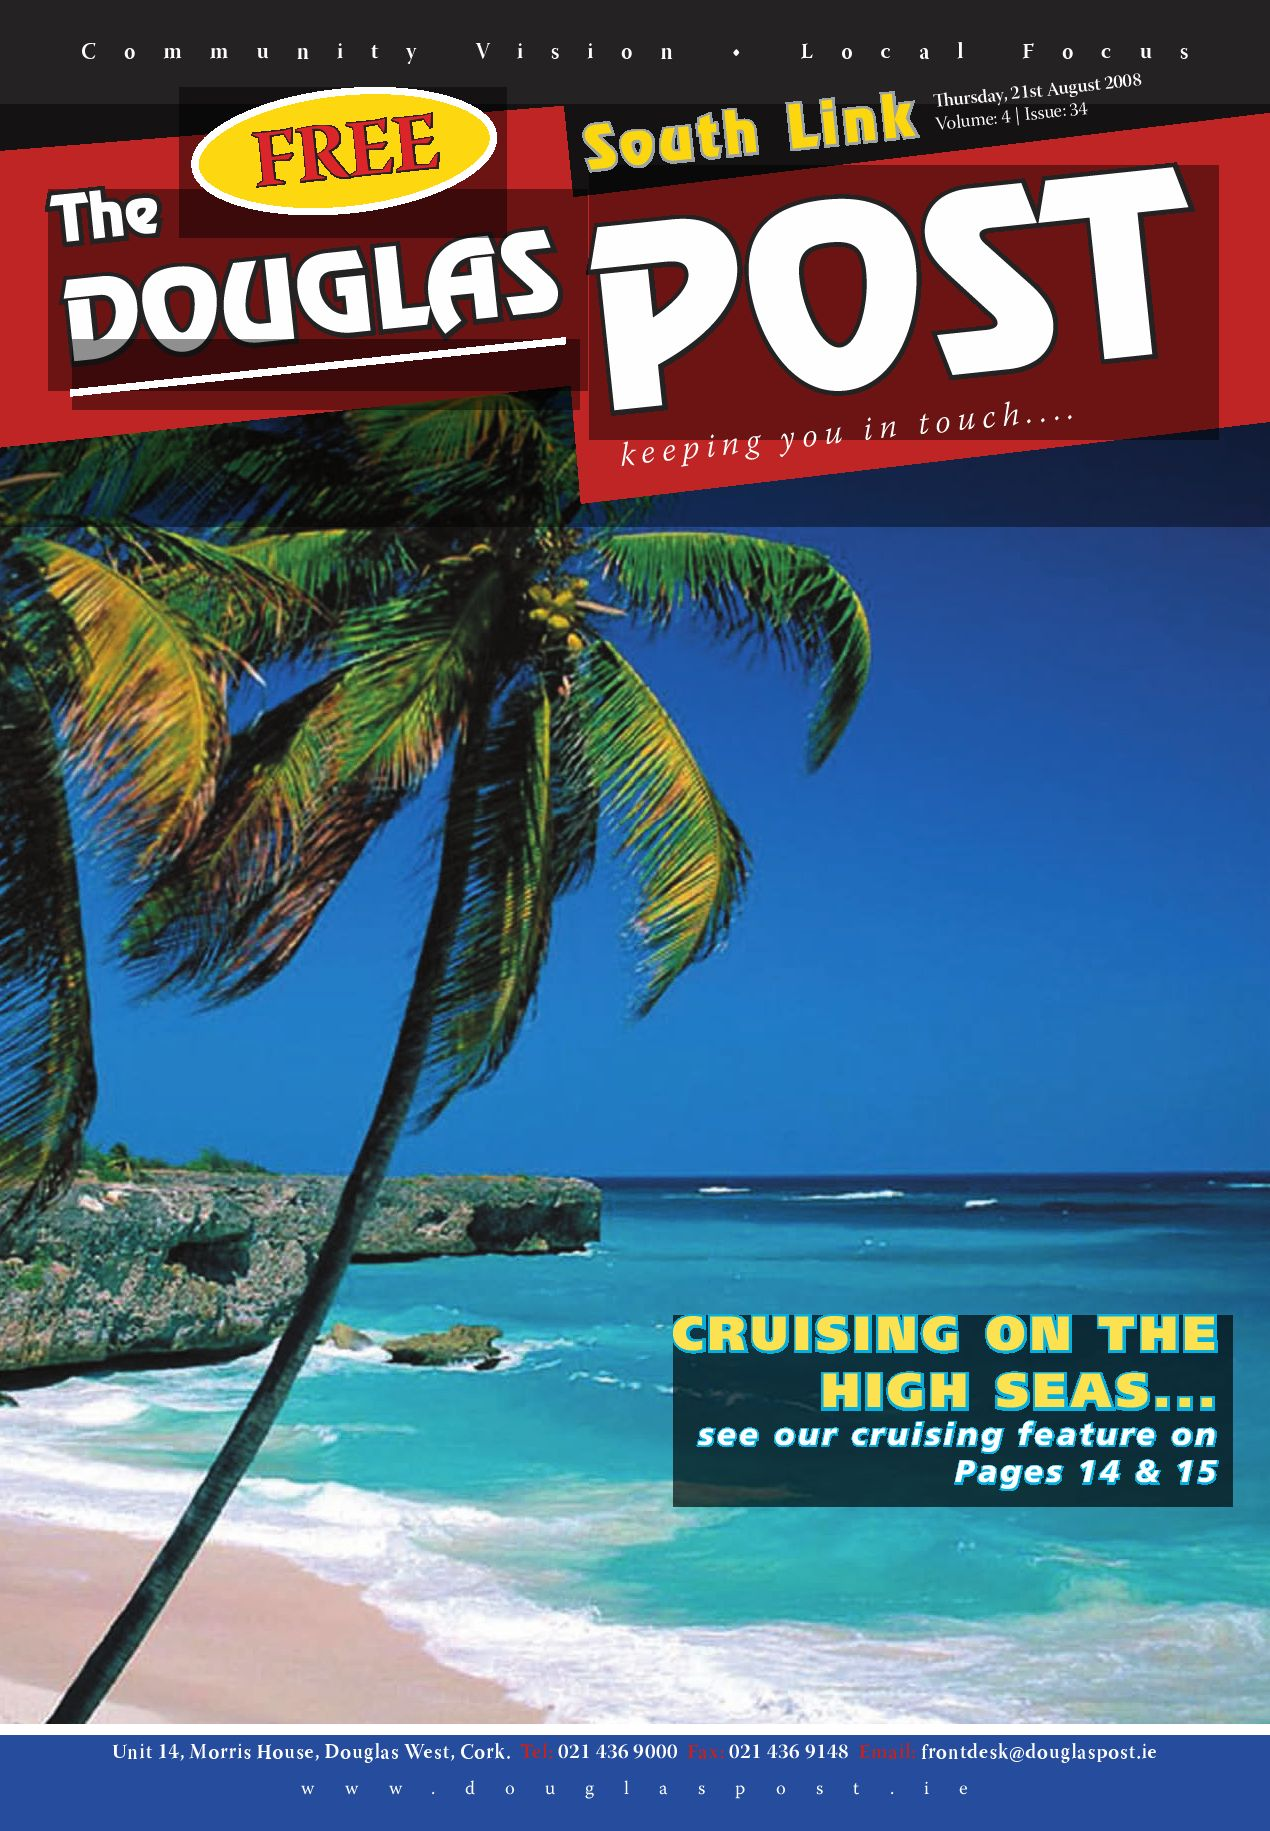 Page 1 of magazine (Front cover/page)